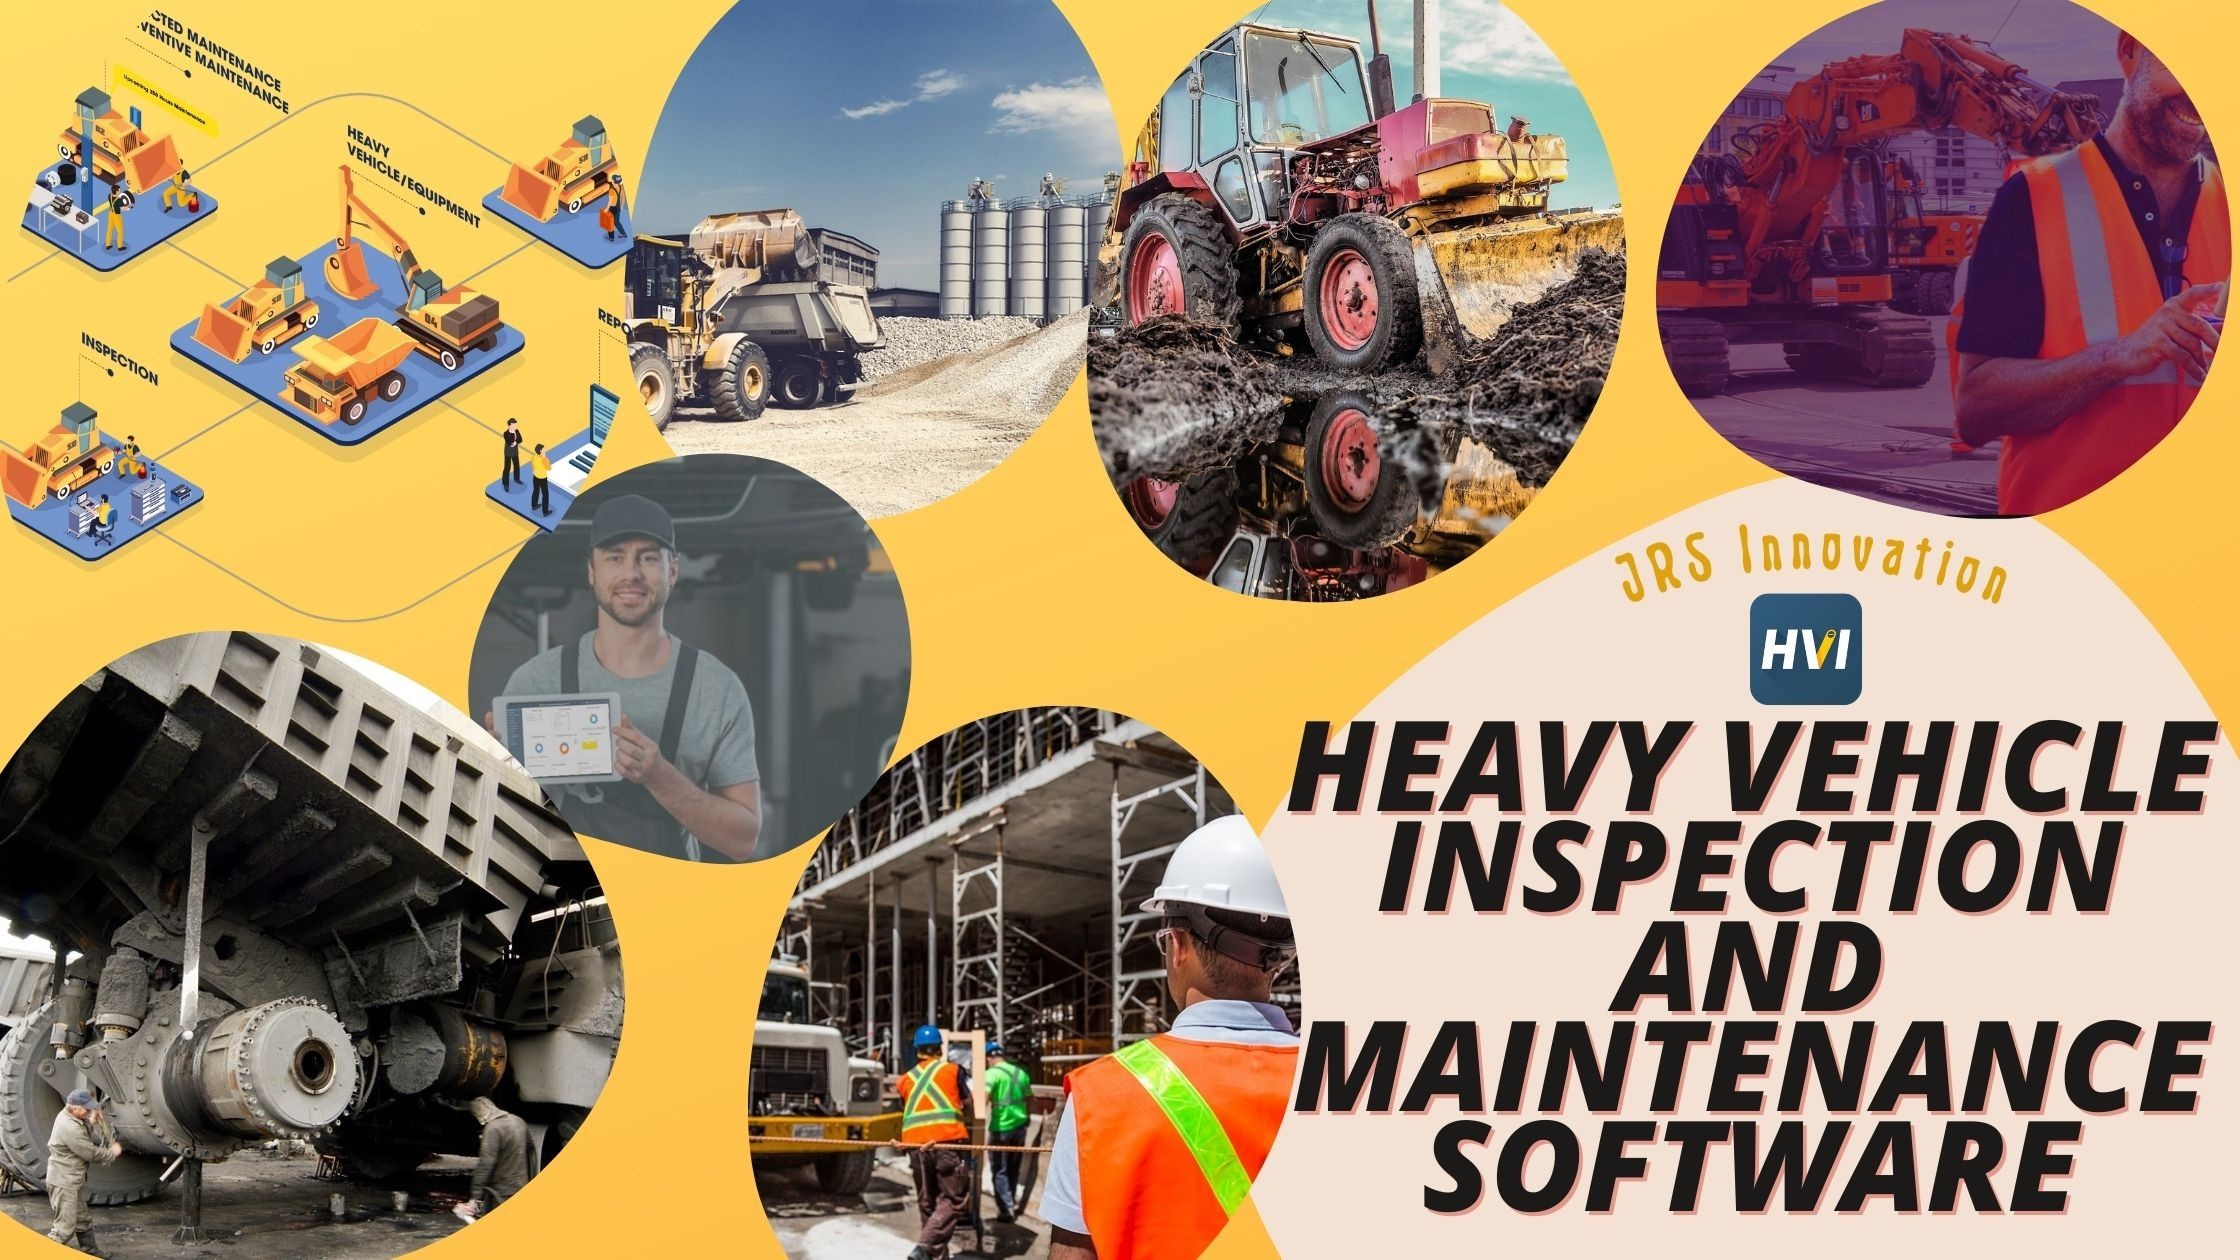 Heavy vehicle inspection and maintenance software